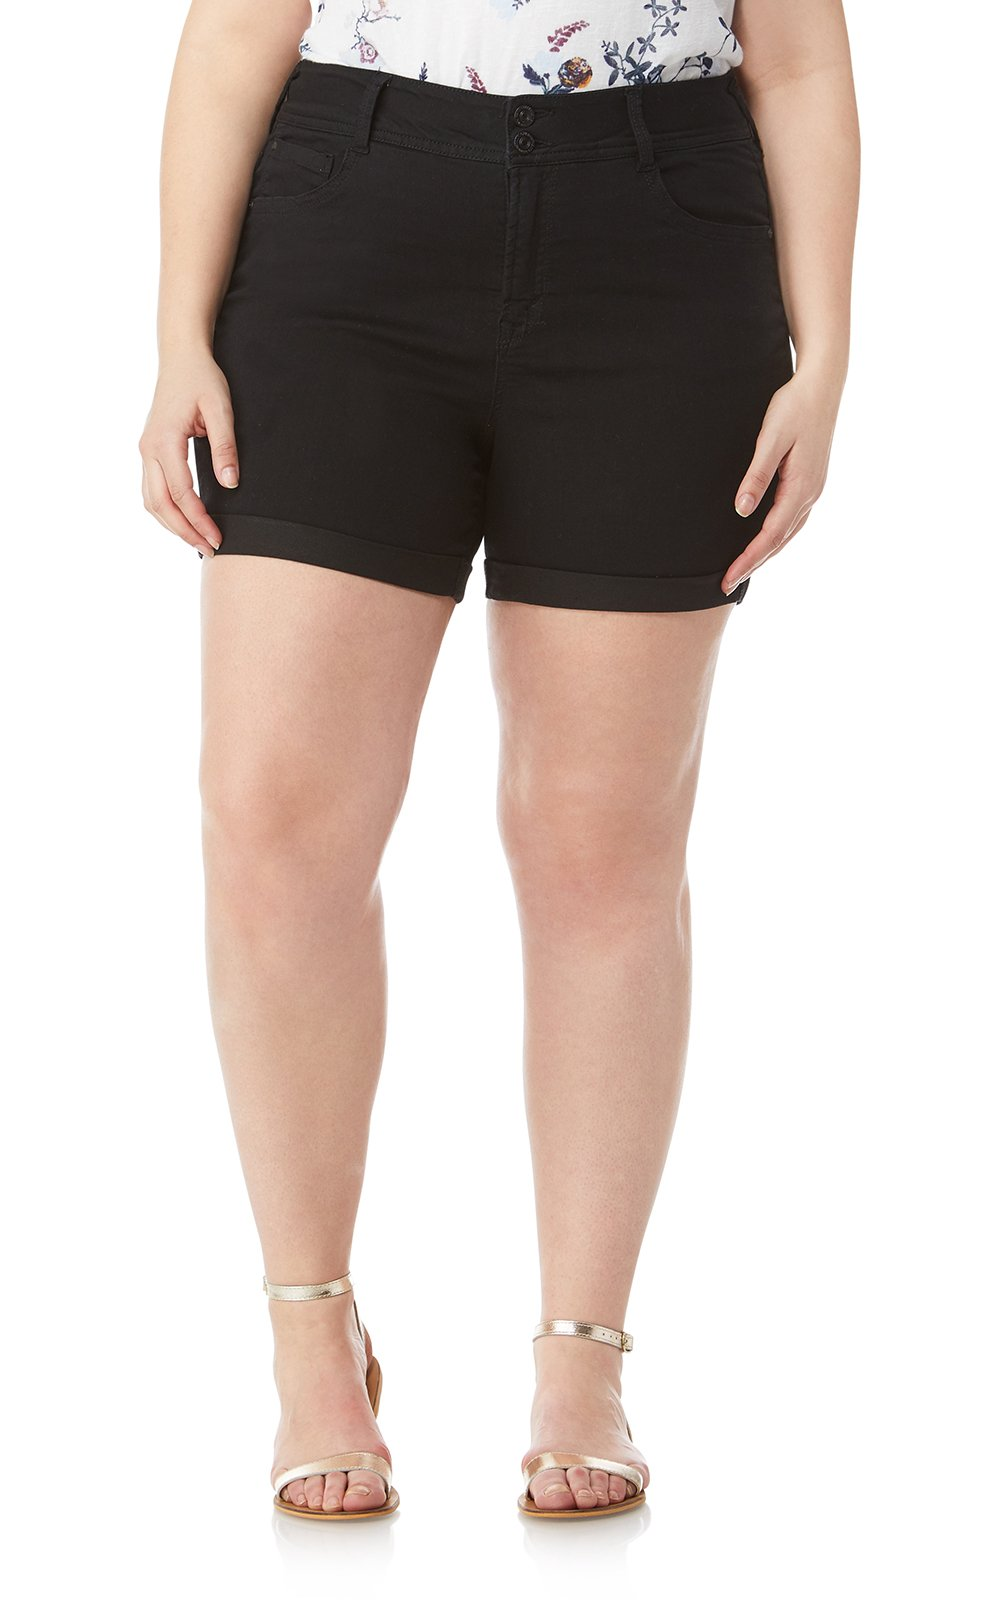 WallFlower Women's-Juniors Plus Size Insta Soft Ultra Shorts in Black, 16 Plus